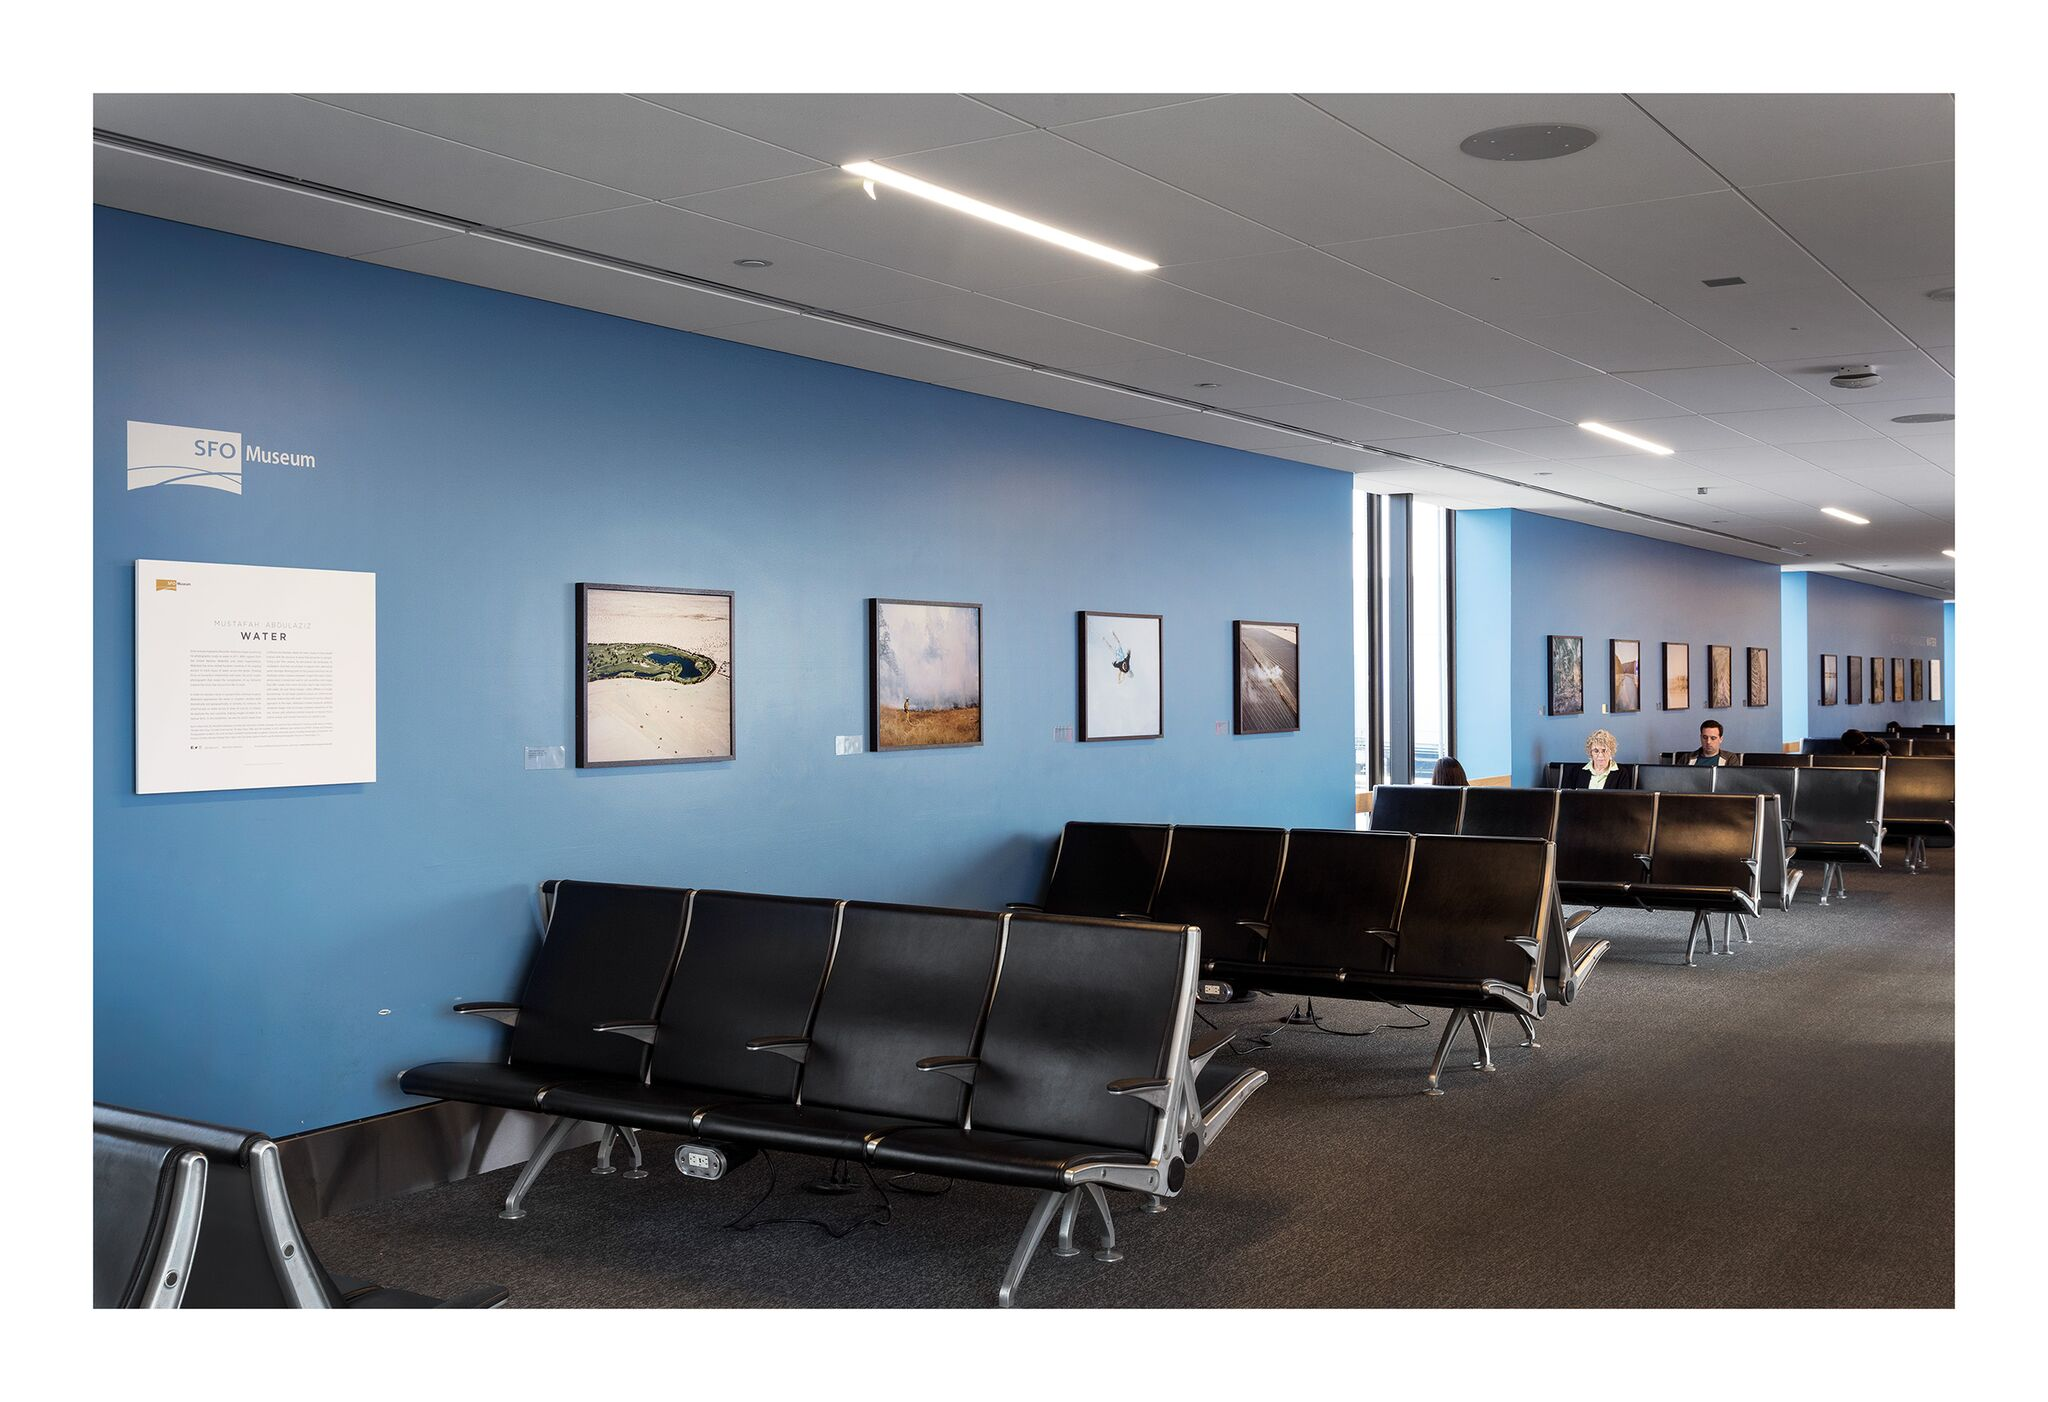 Photos displayed are from Mustafah Abdulaziz's  Water,  as displayed in SFO Terminal 1 from August 07 - October 31, 2017. Courtesy of SFO Museum.